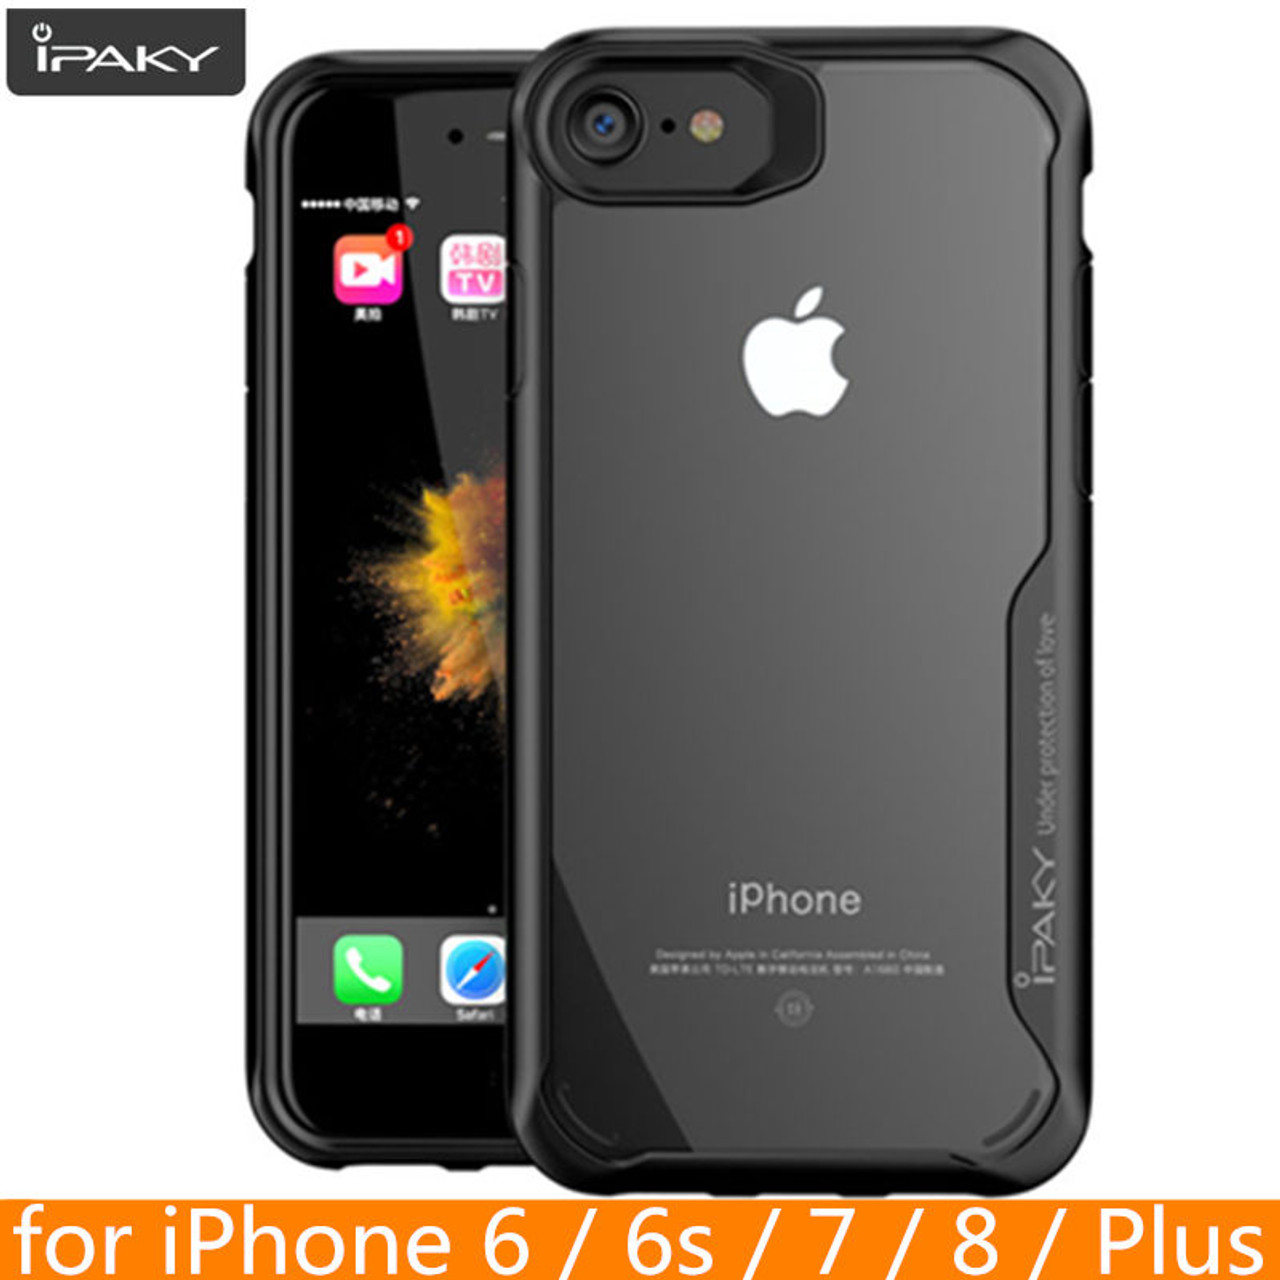 timeless design 65b01 f6b0d for iPhone 8 8 Plus Case Original IPAKY 6 6s Plus Silicone Acrylic Hybrid  Shockproof Transparent Case for iPhone 7 7 Plus Case